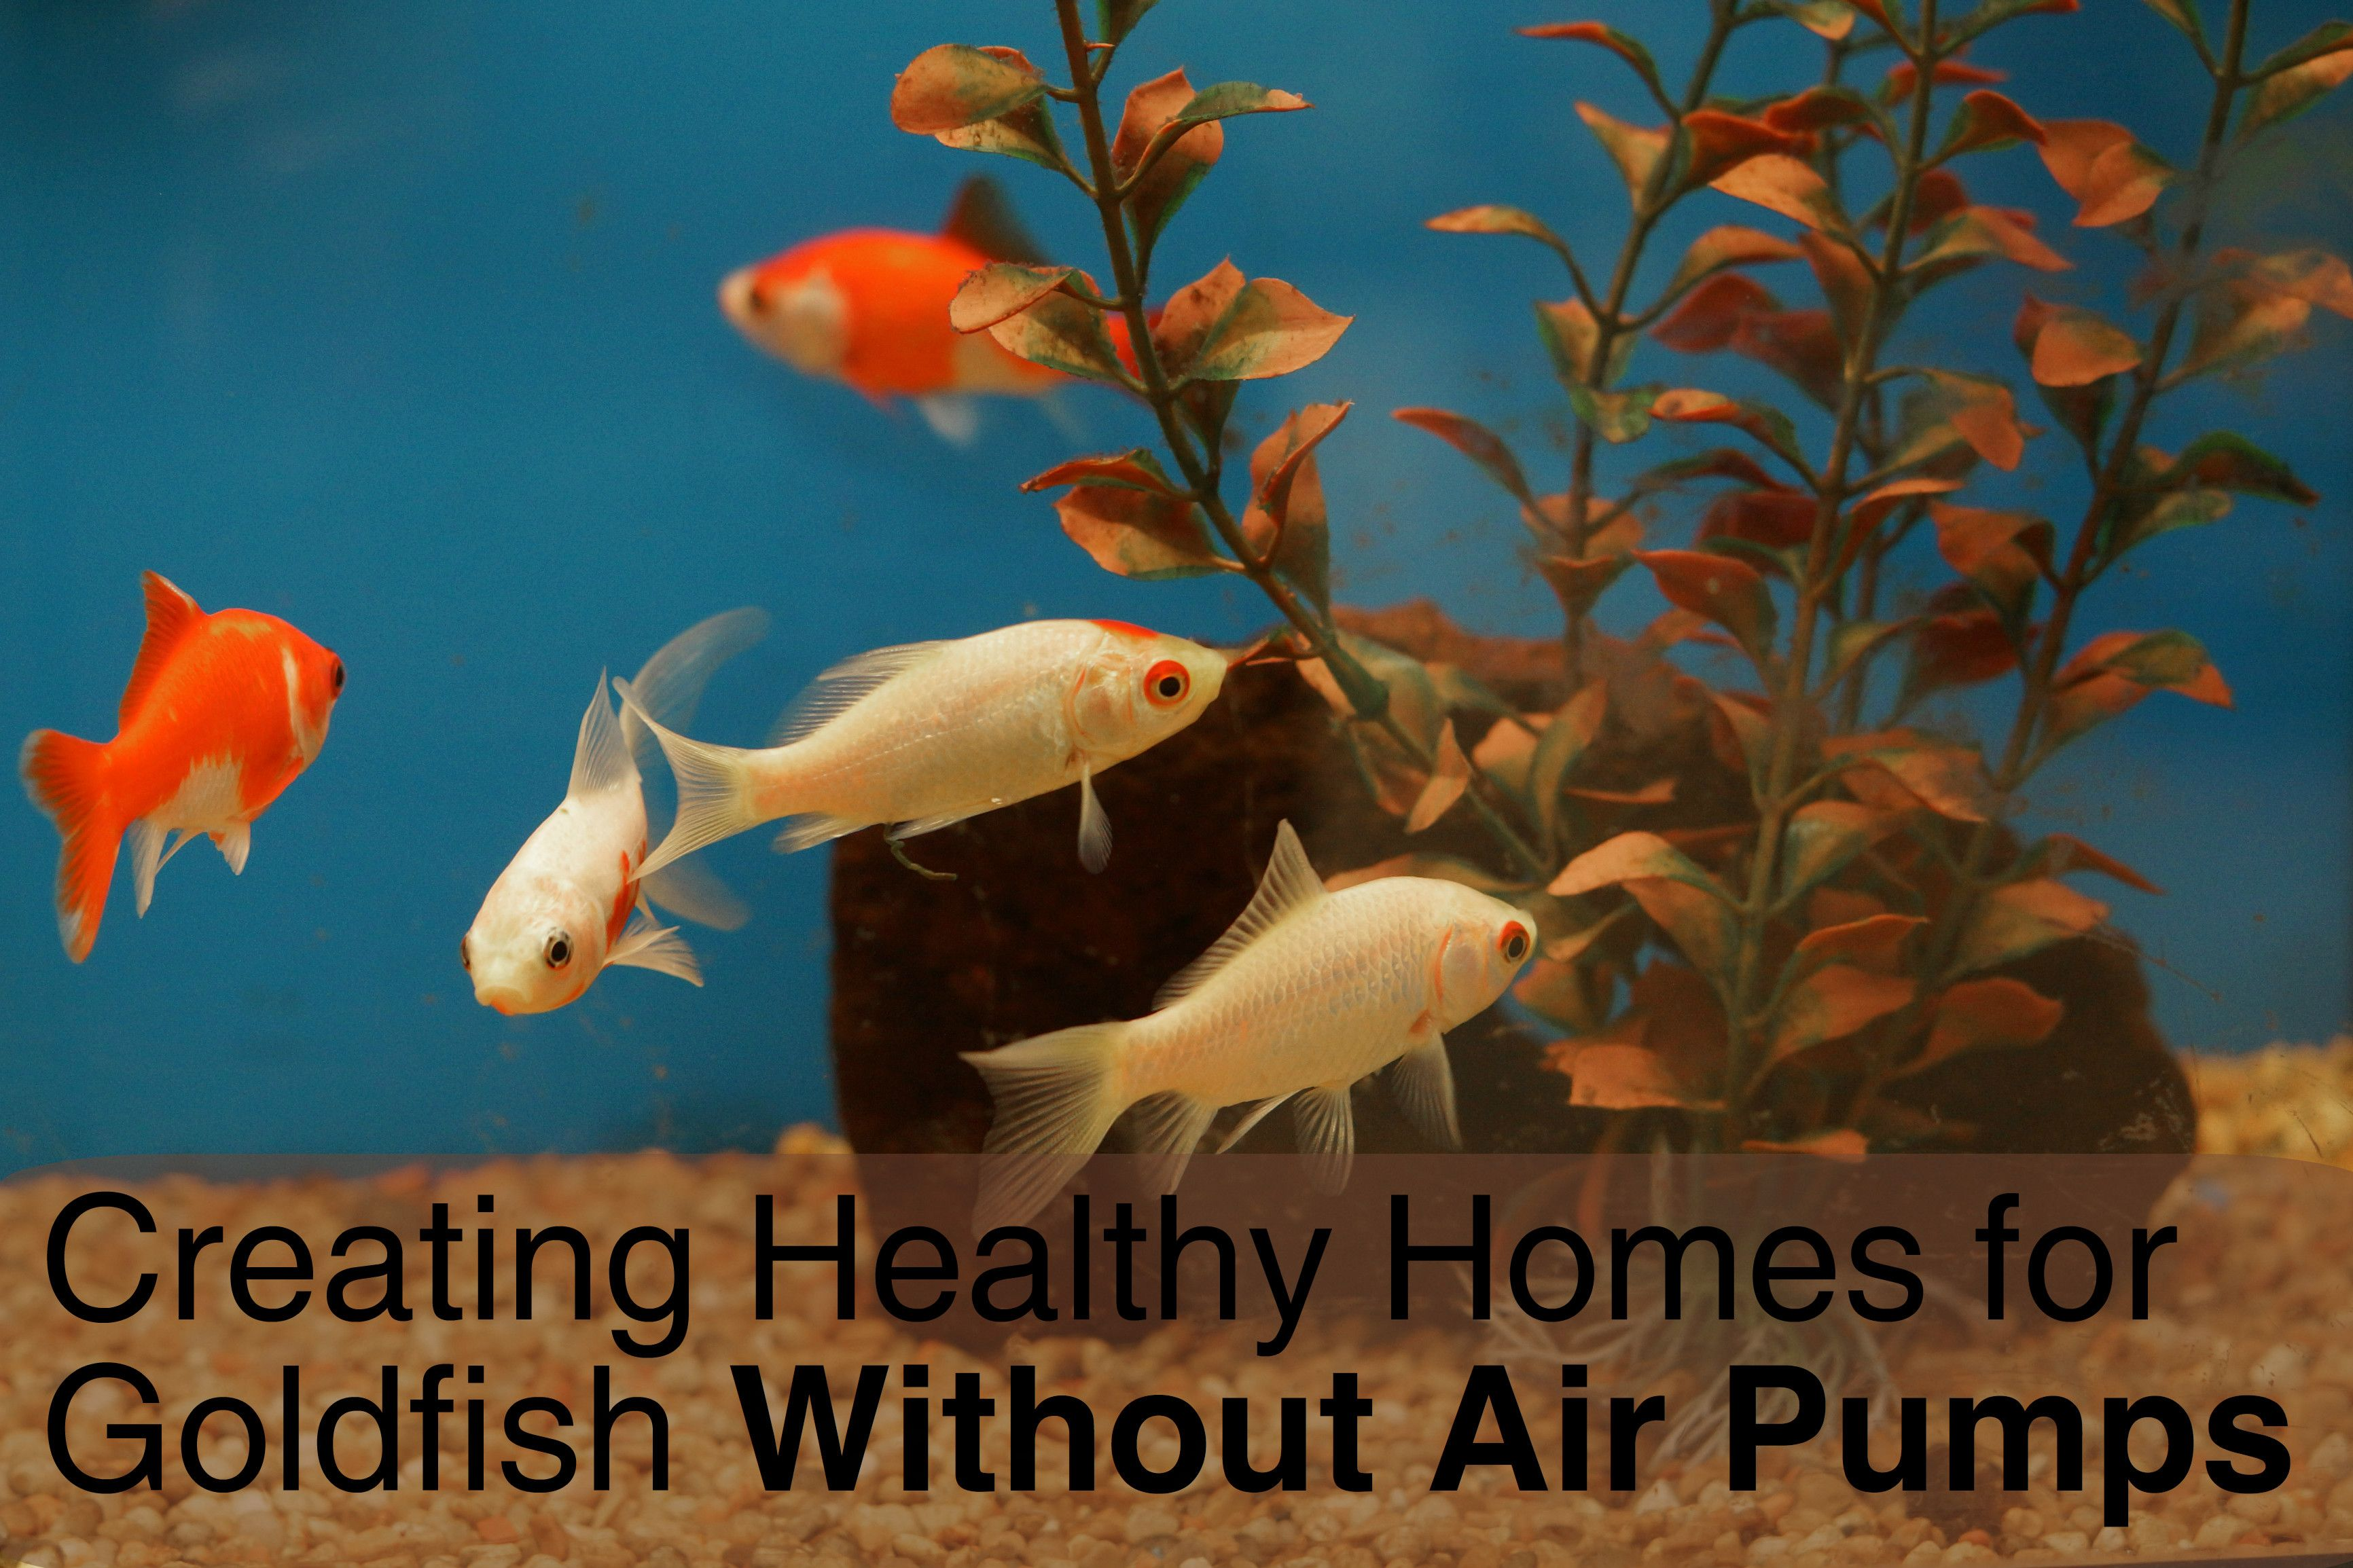 Caring for Your Goldfish in a Fish Bowl Without an Air Pump